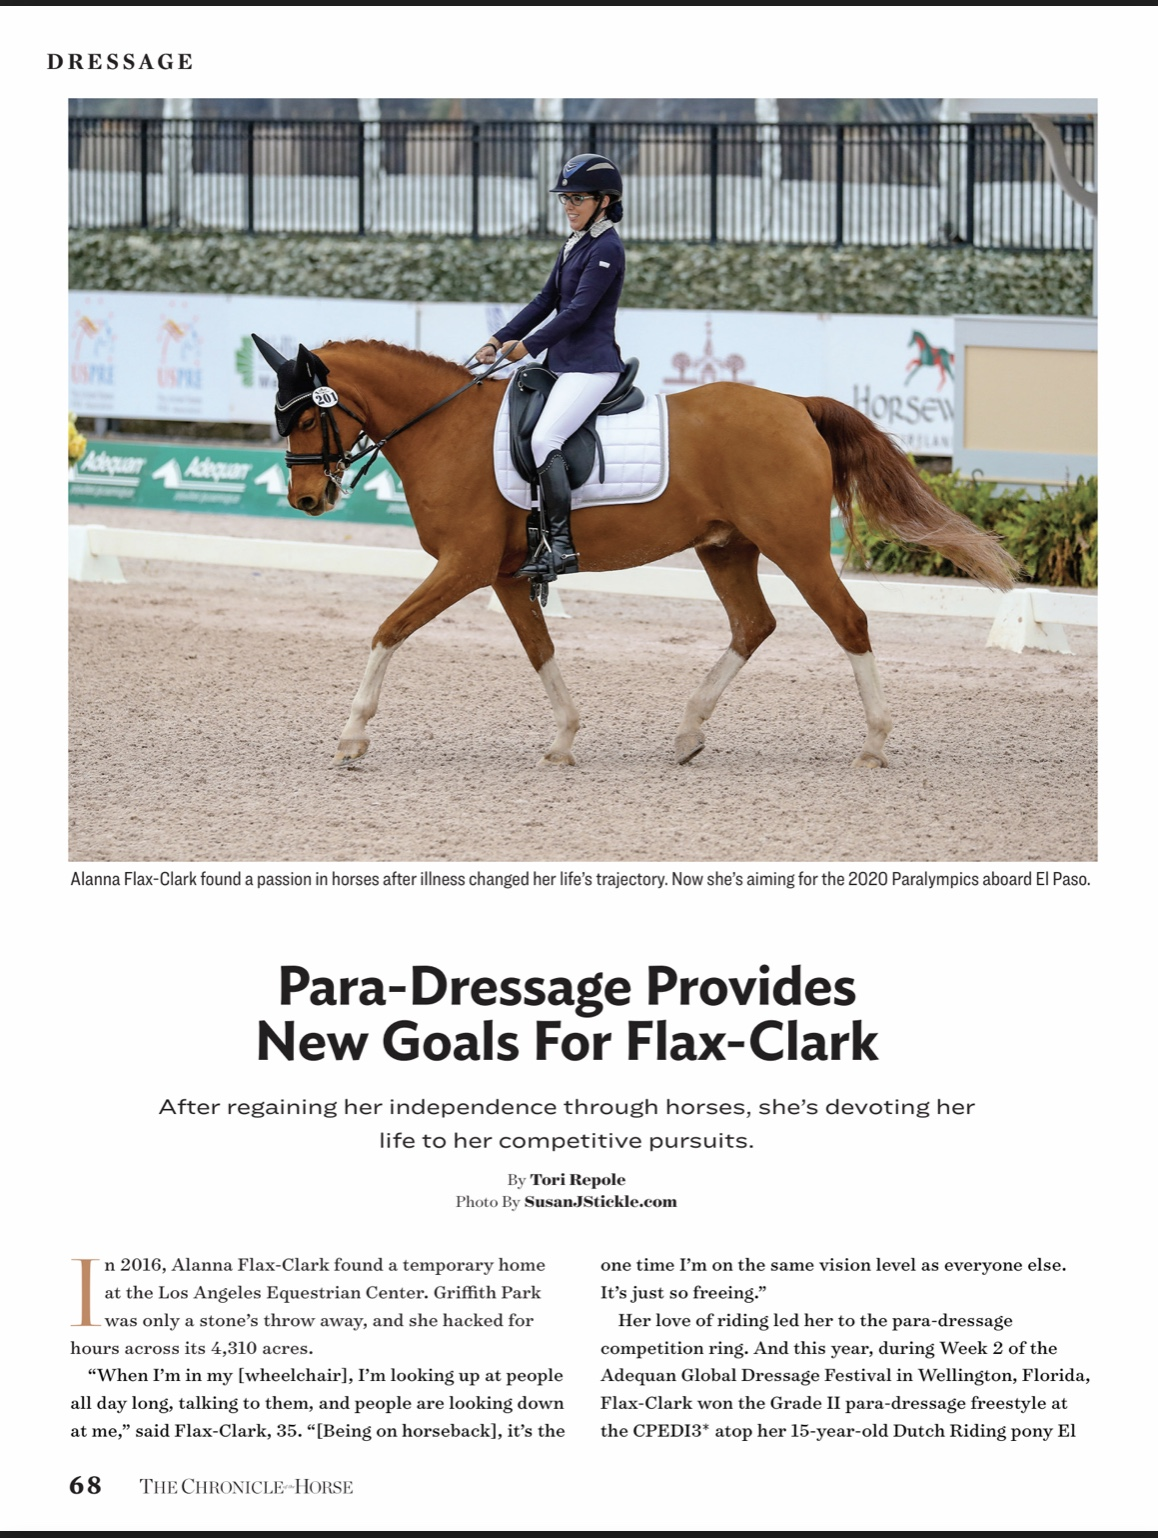 Para-Dressage Provides New Goals for Flax-Clark